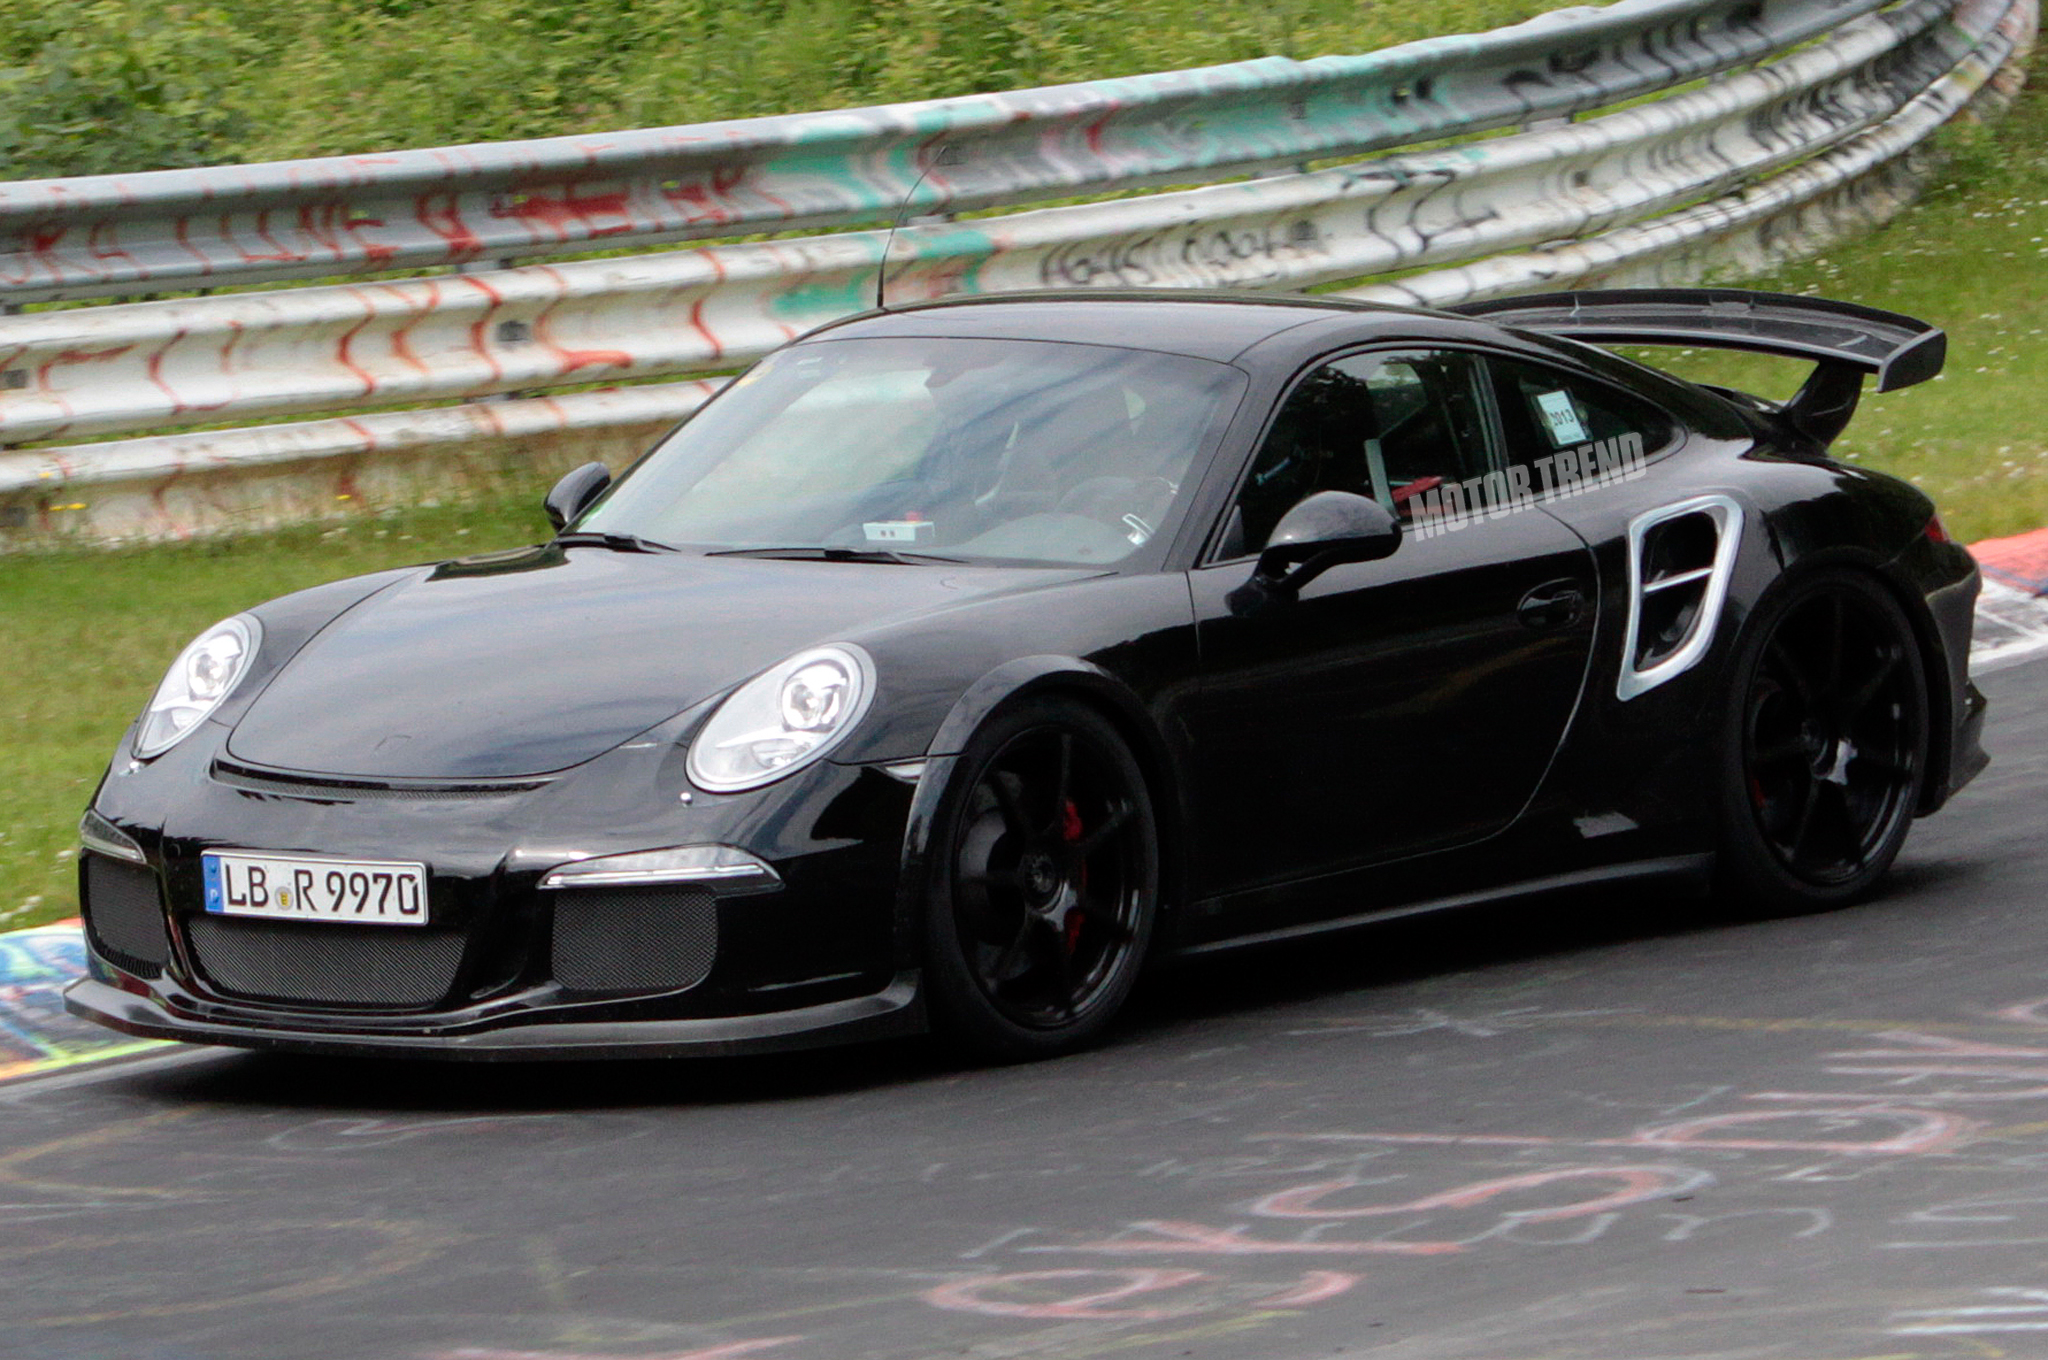 Porsche 911 GT2 Spied on 'Ring, Could be Fastest 911 Ever